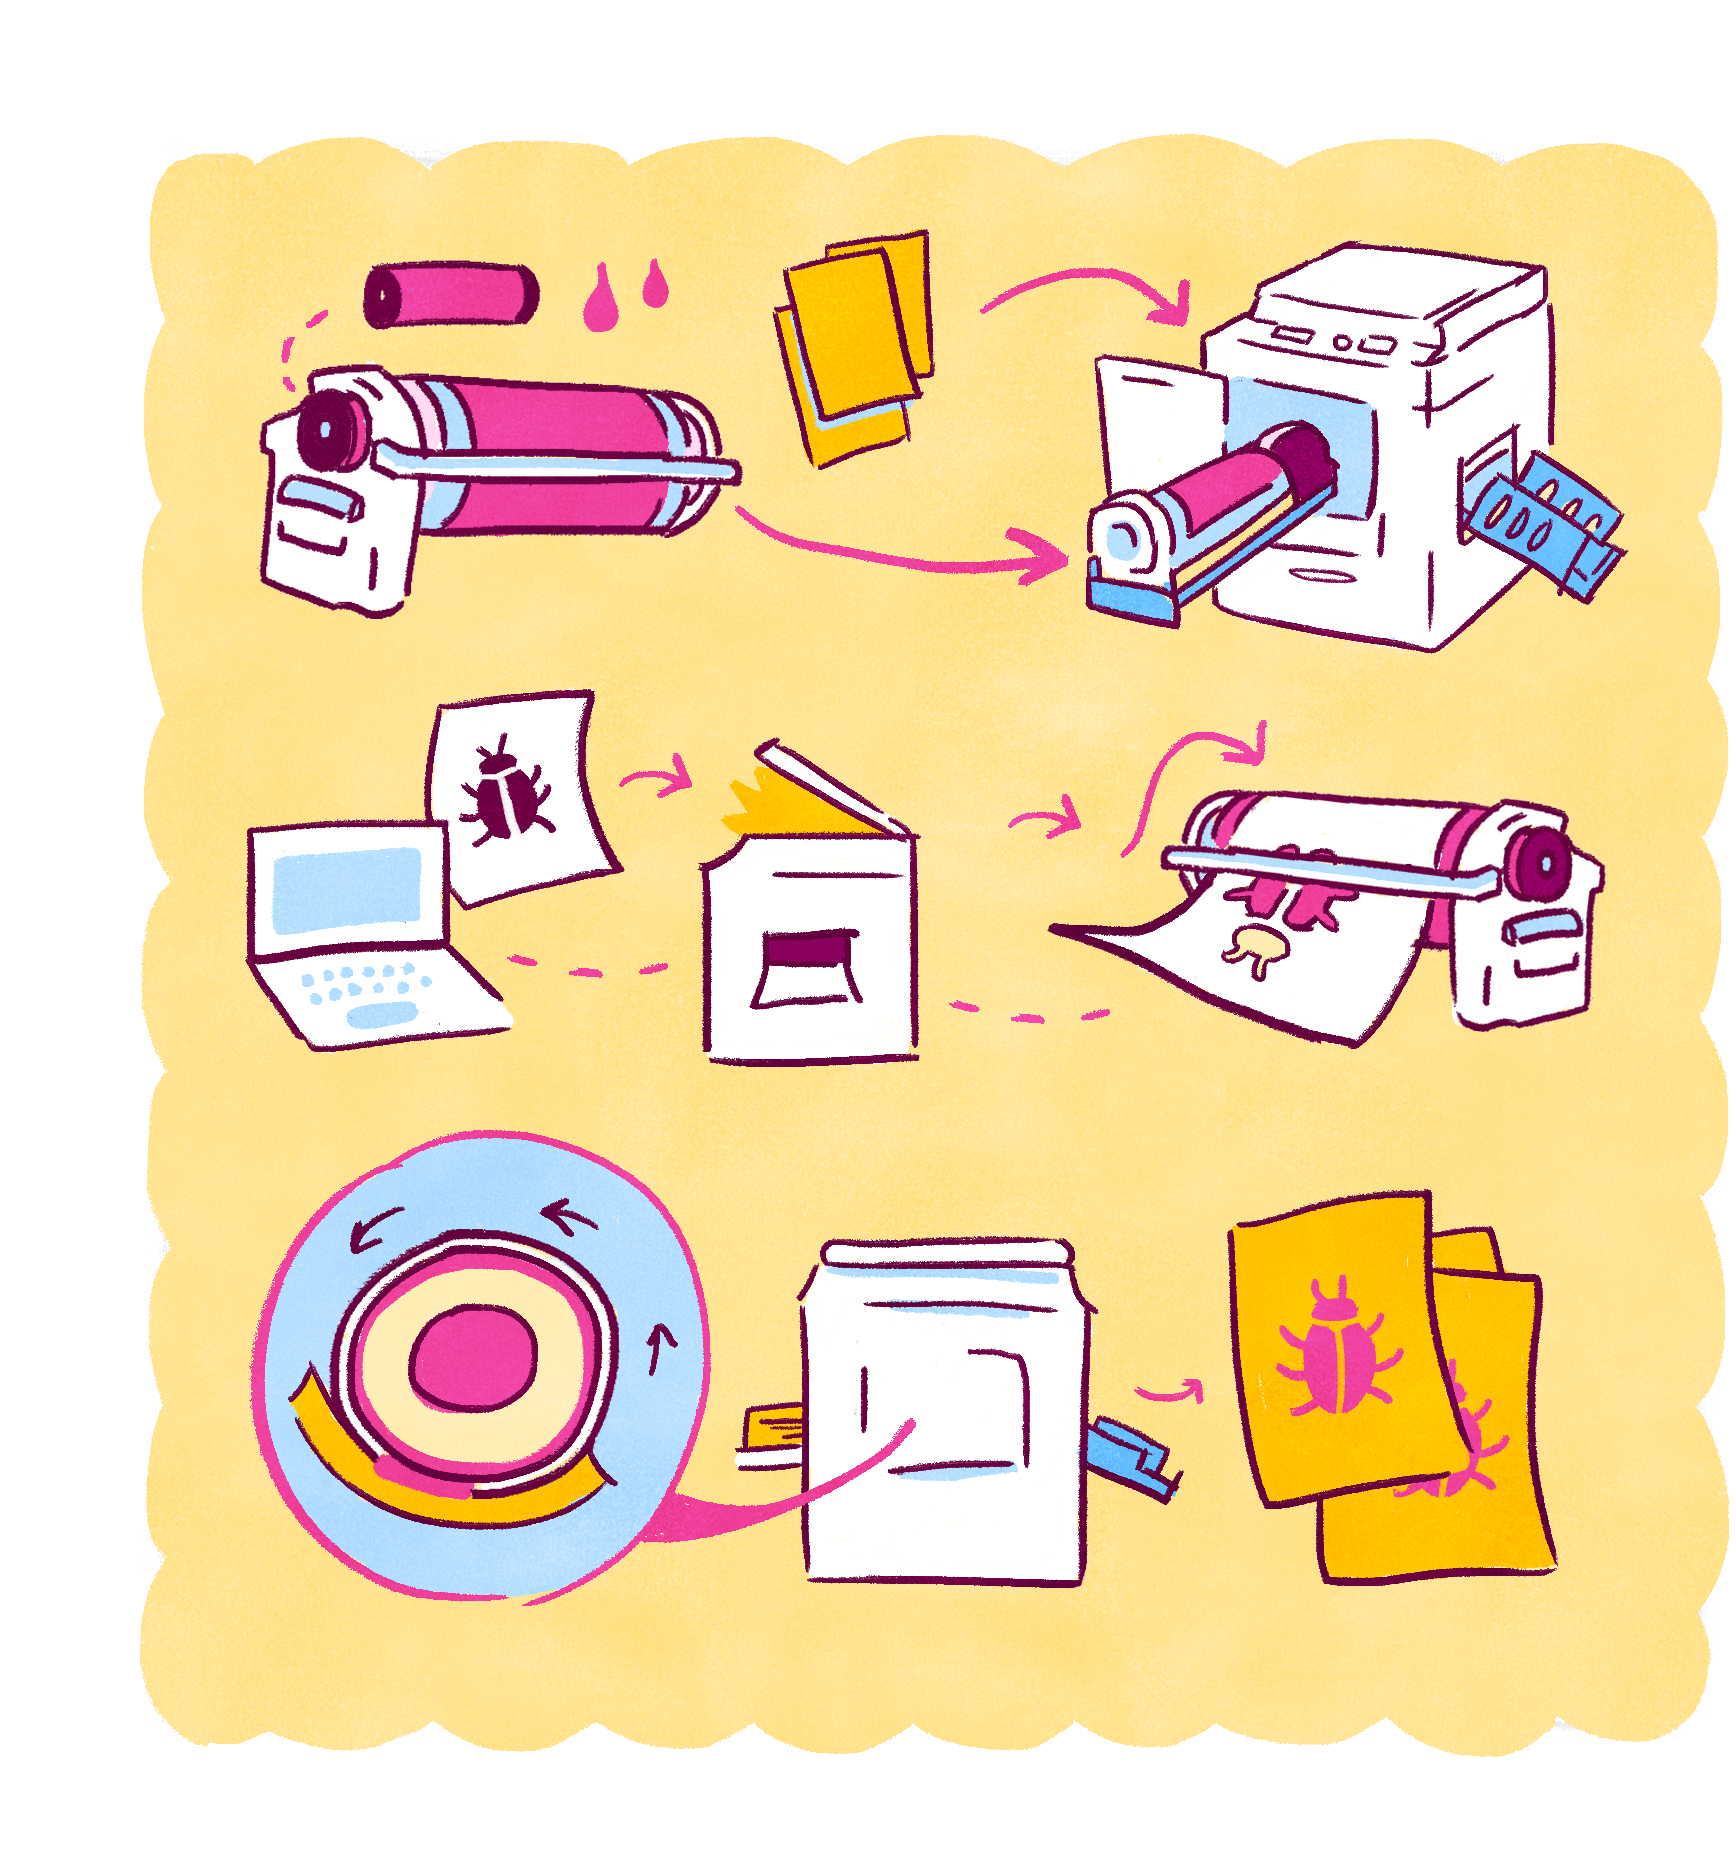 Illustartion showing the steps to Risograph printing. The background is yellow and the objects have a pink and blue color scheme.